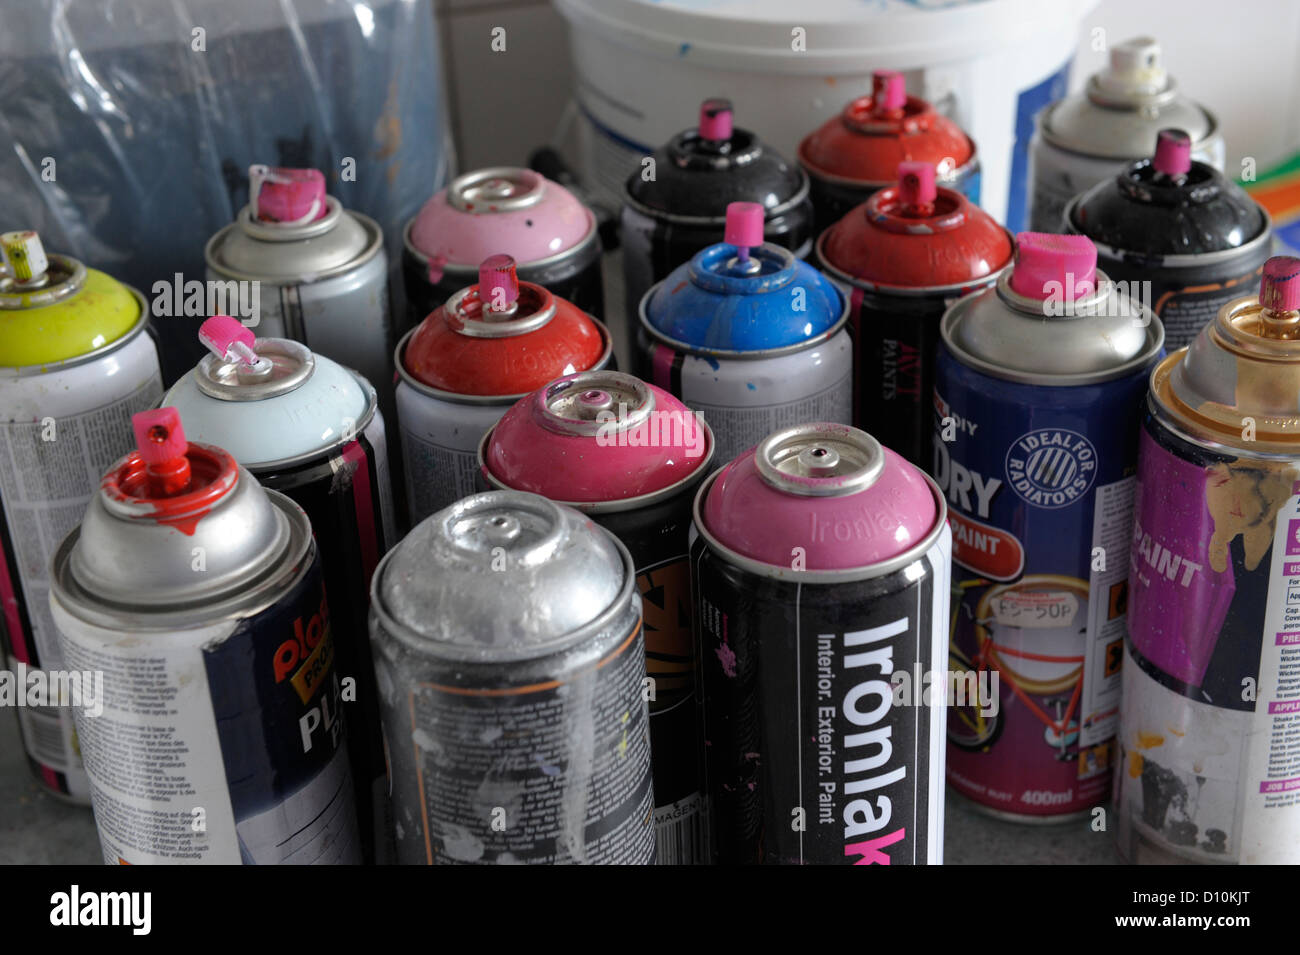 Cans of aerosol spray paint in an artists' studio Stock Photo